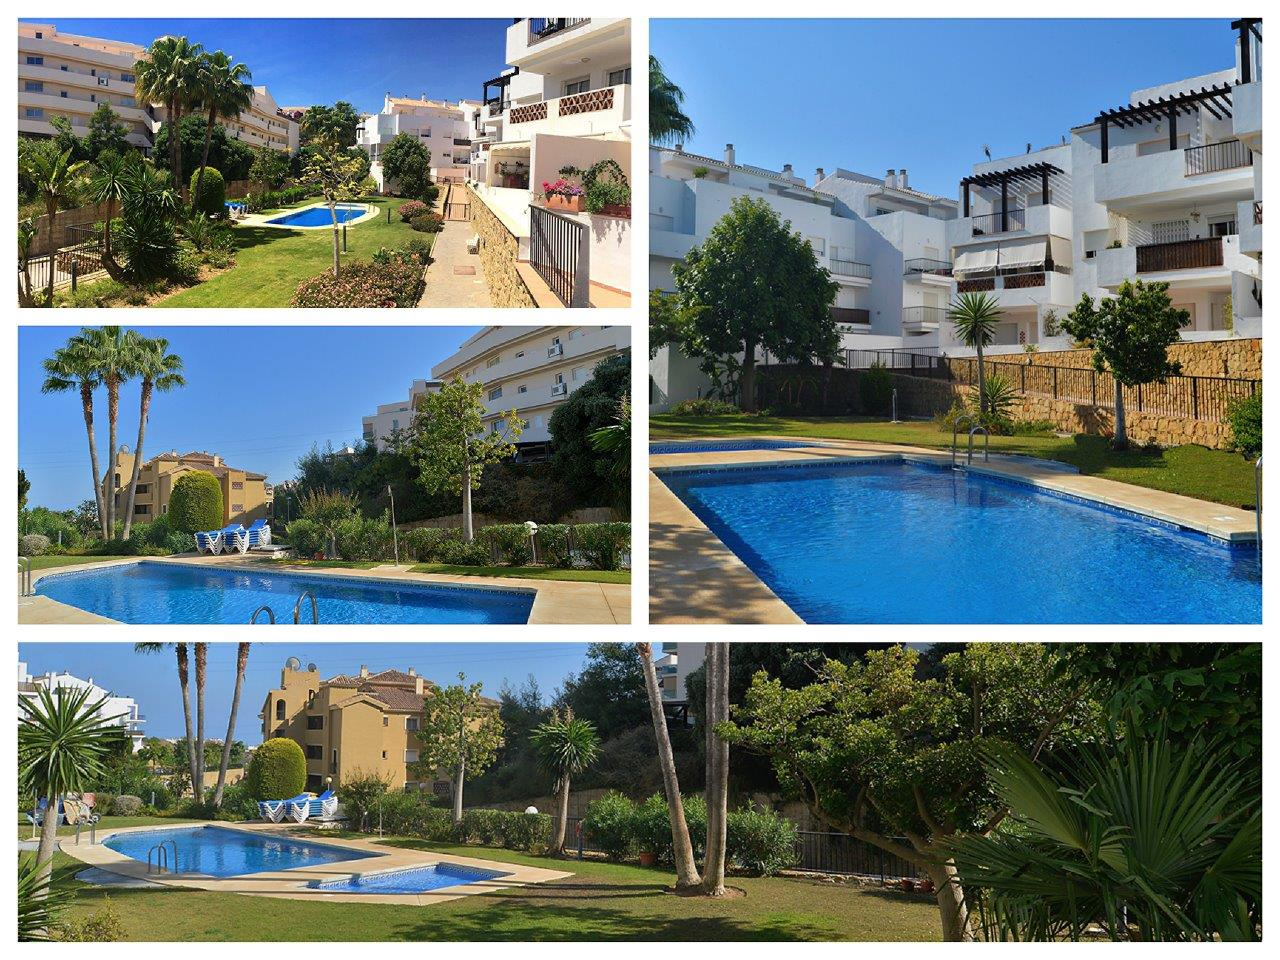 Appartement in Miraflores Seaflower (Mijas Costa) te koop